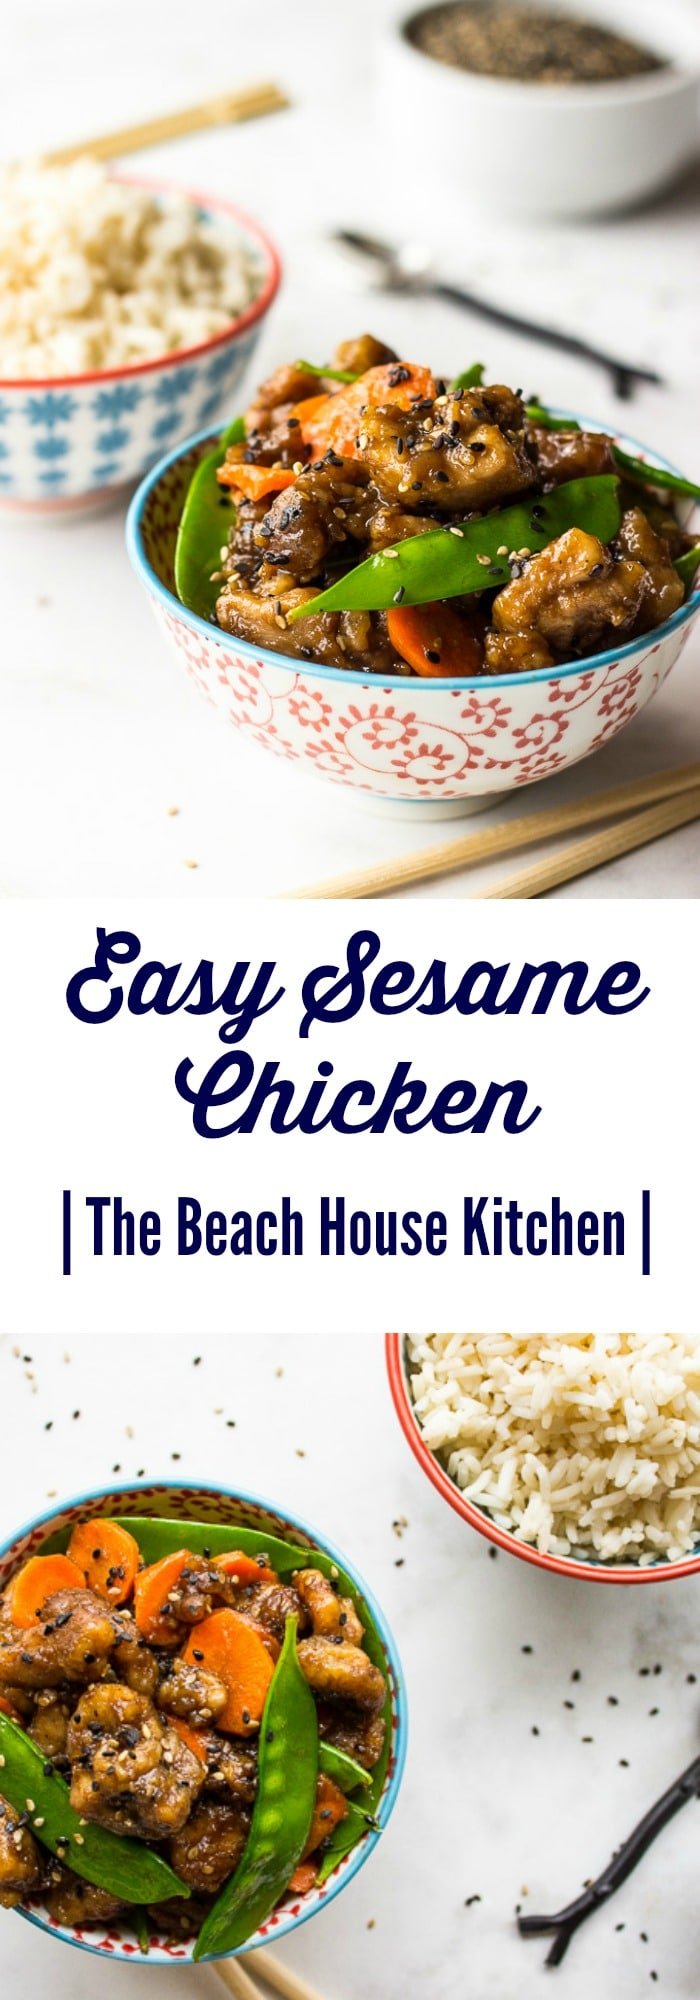 Easy Sesame Chicken | The Beach House Kitchen